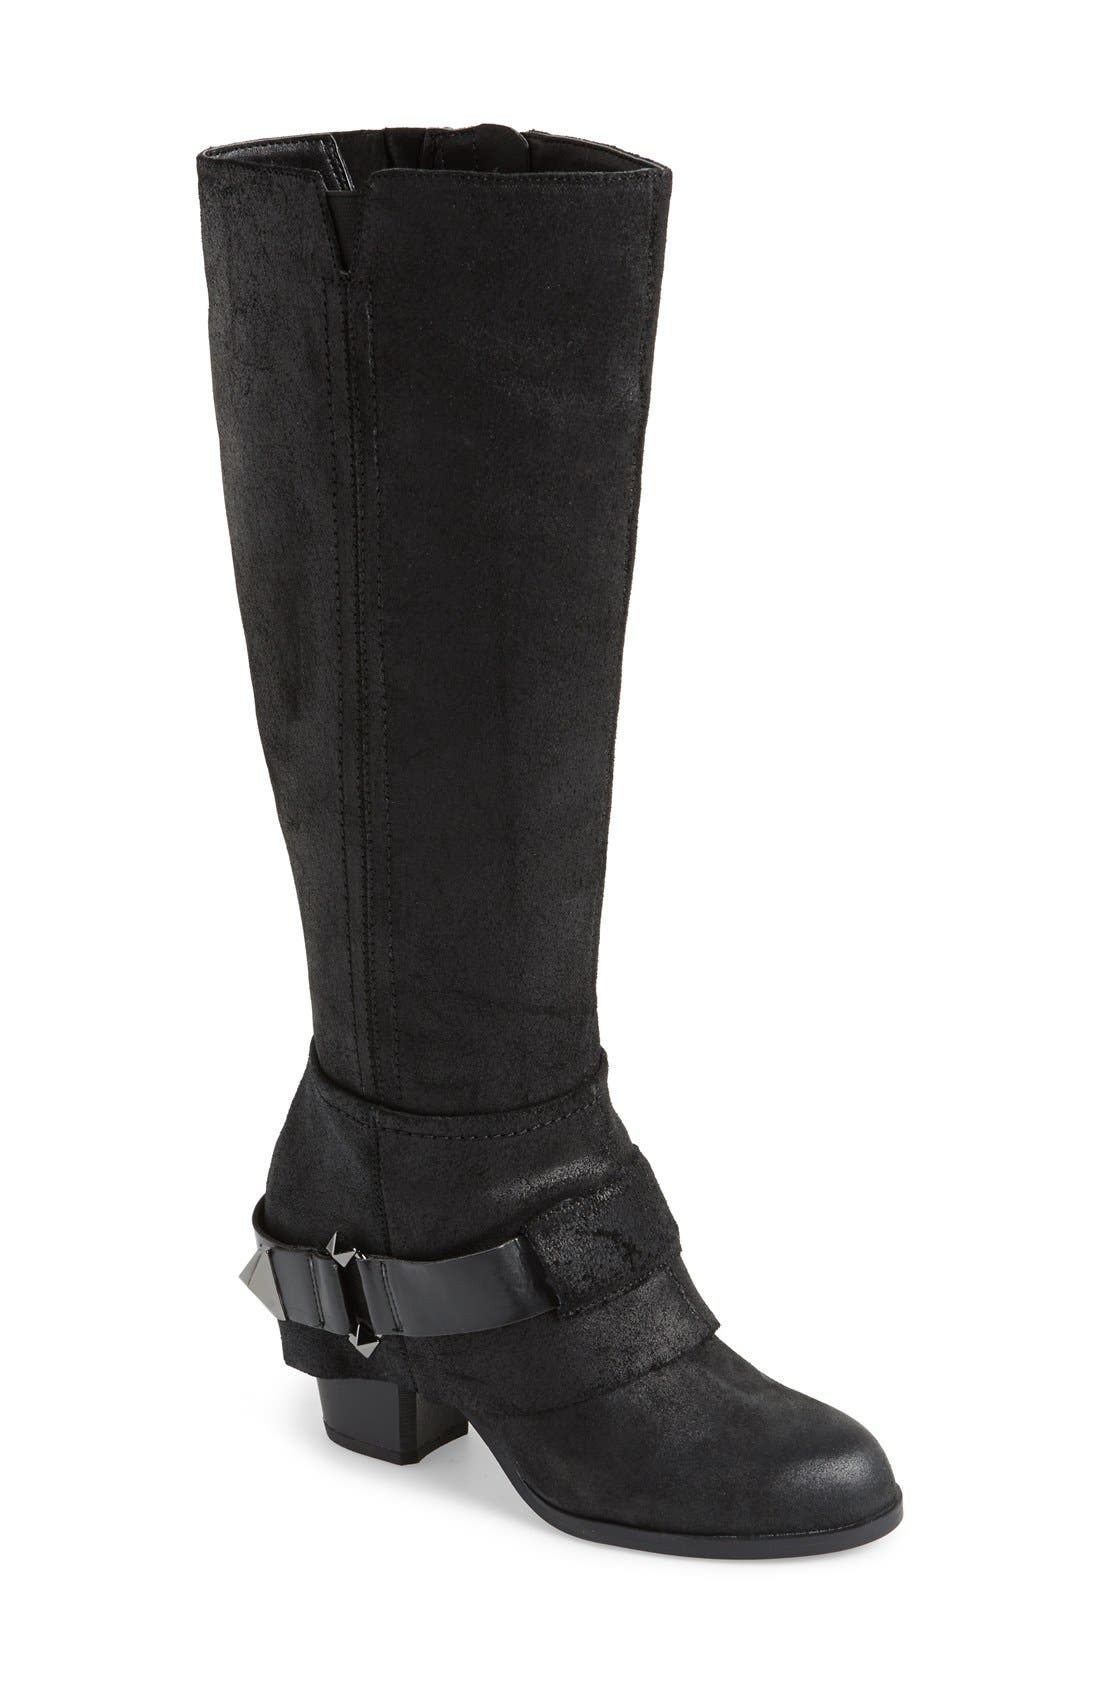 Alternate Image 1 Selected - Fergie 'Theory' Knee High Boot (Women)